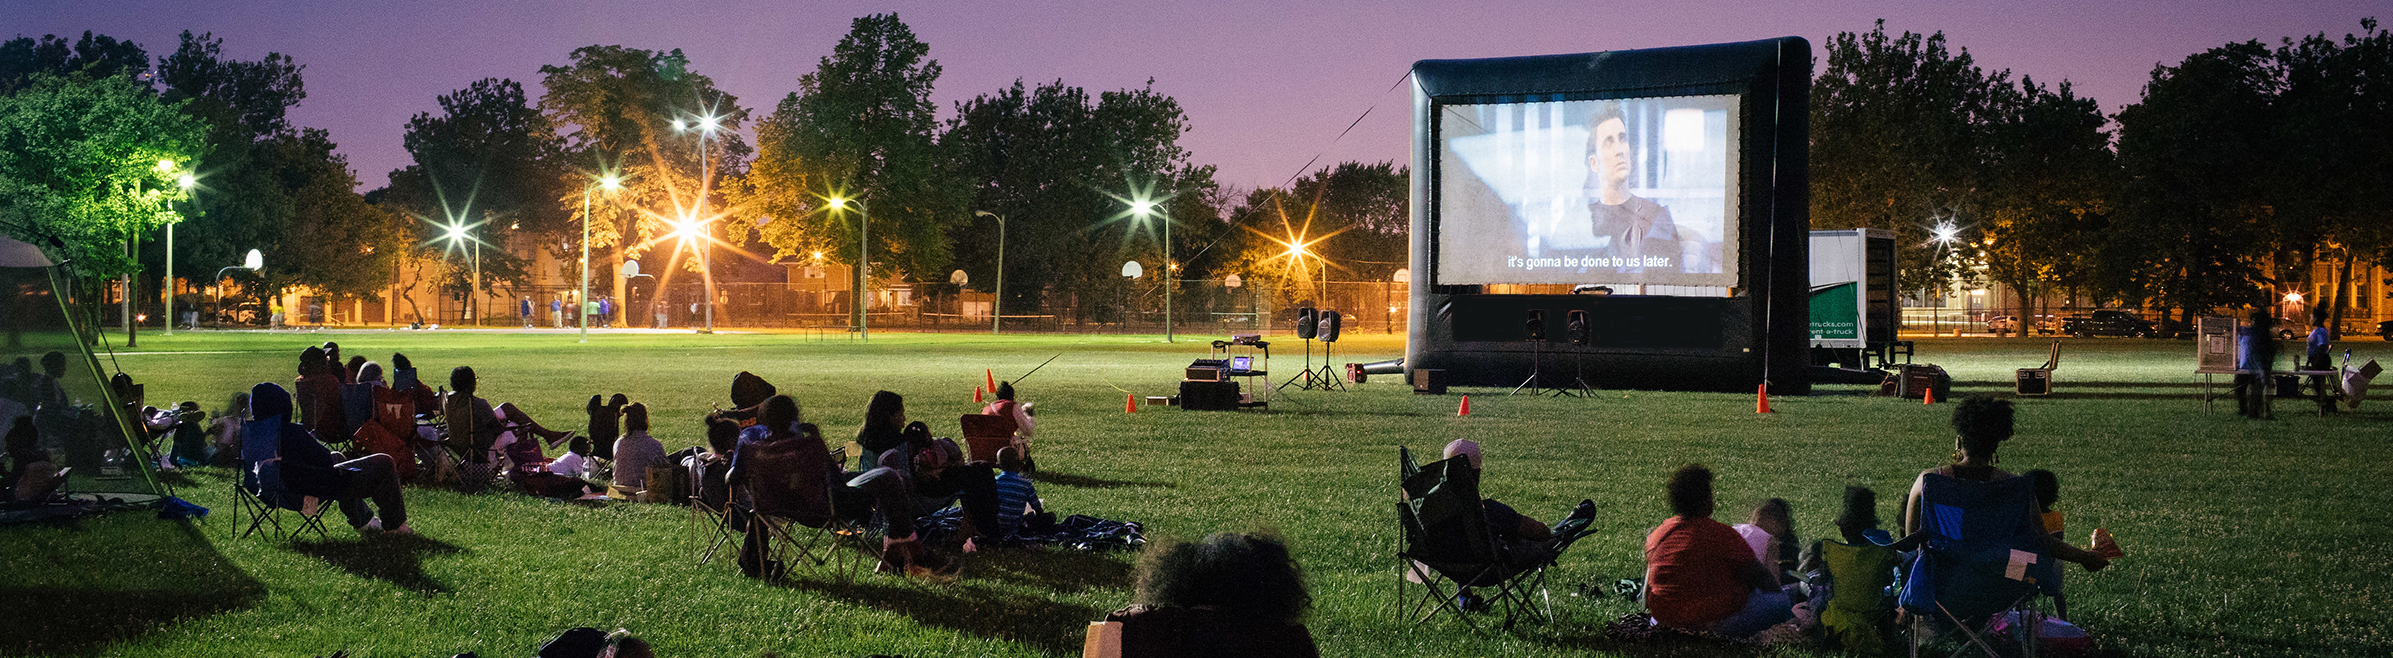 Watching movies in the park